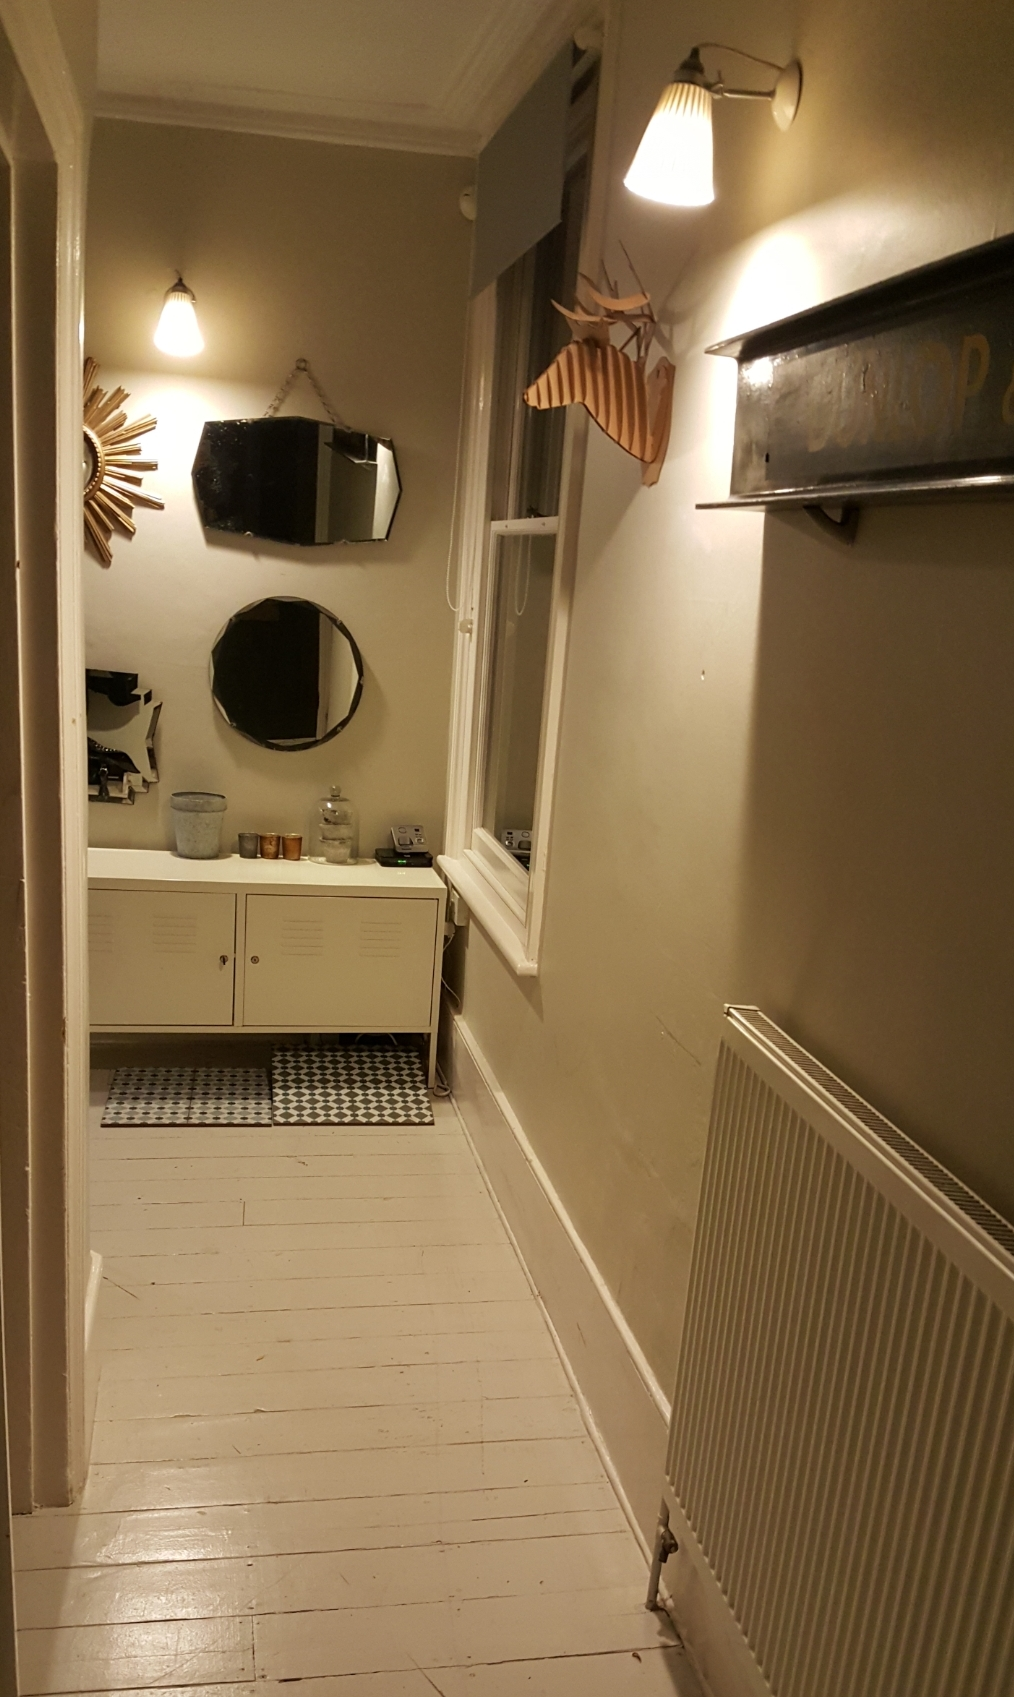 The hallway after my initial attempts to brighten it up by painting the walls and floors in Slipper Satin